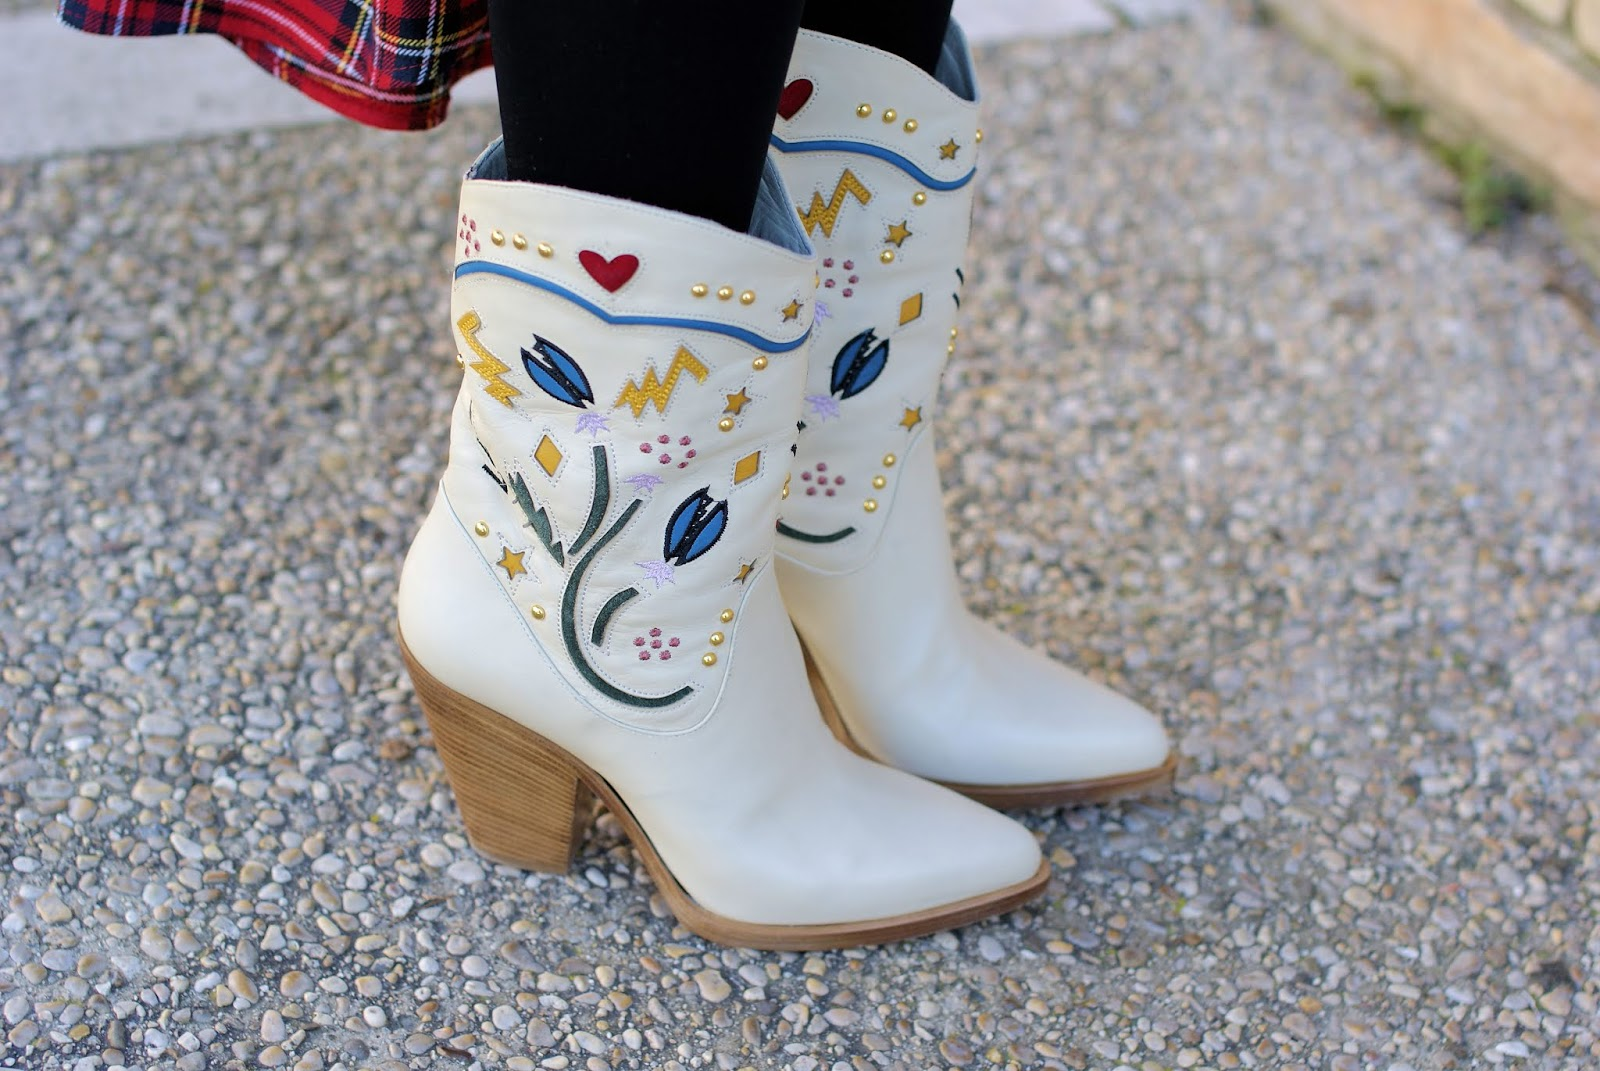 Le Silla boots on Fashion and Cookies fashion blog, fashion blogger style